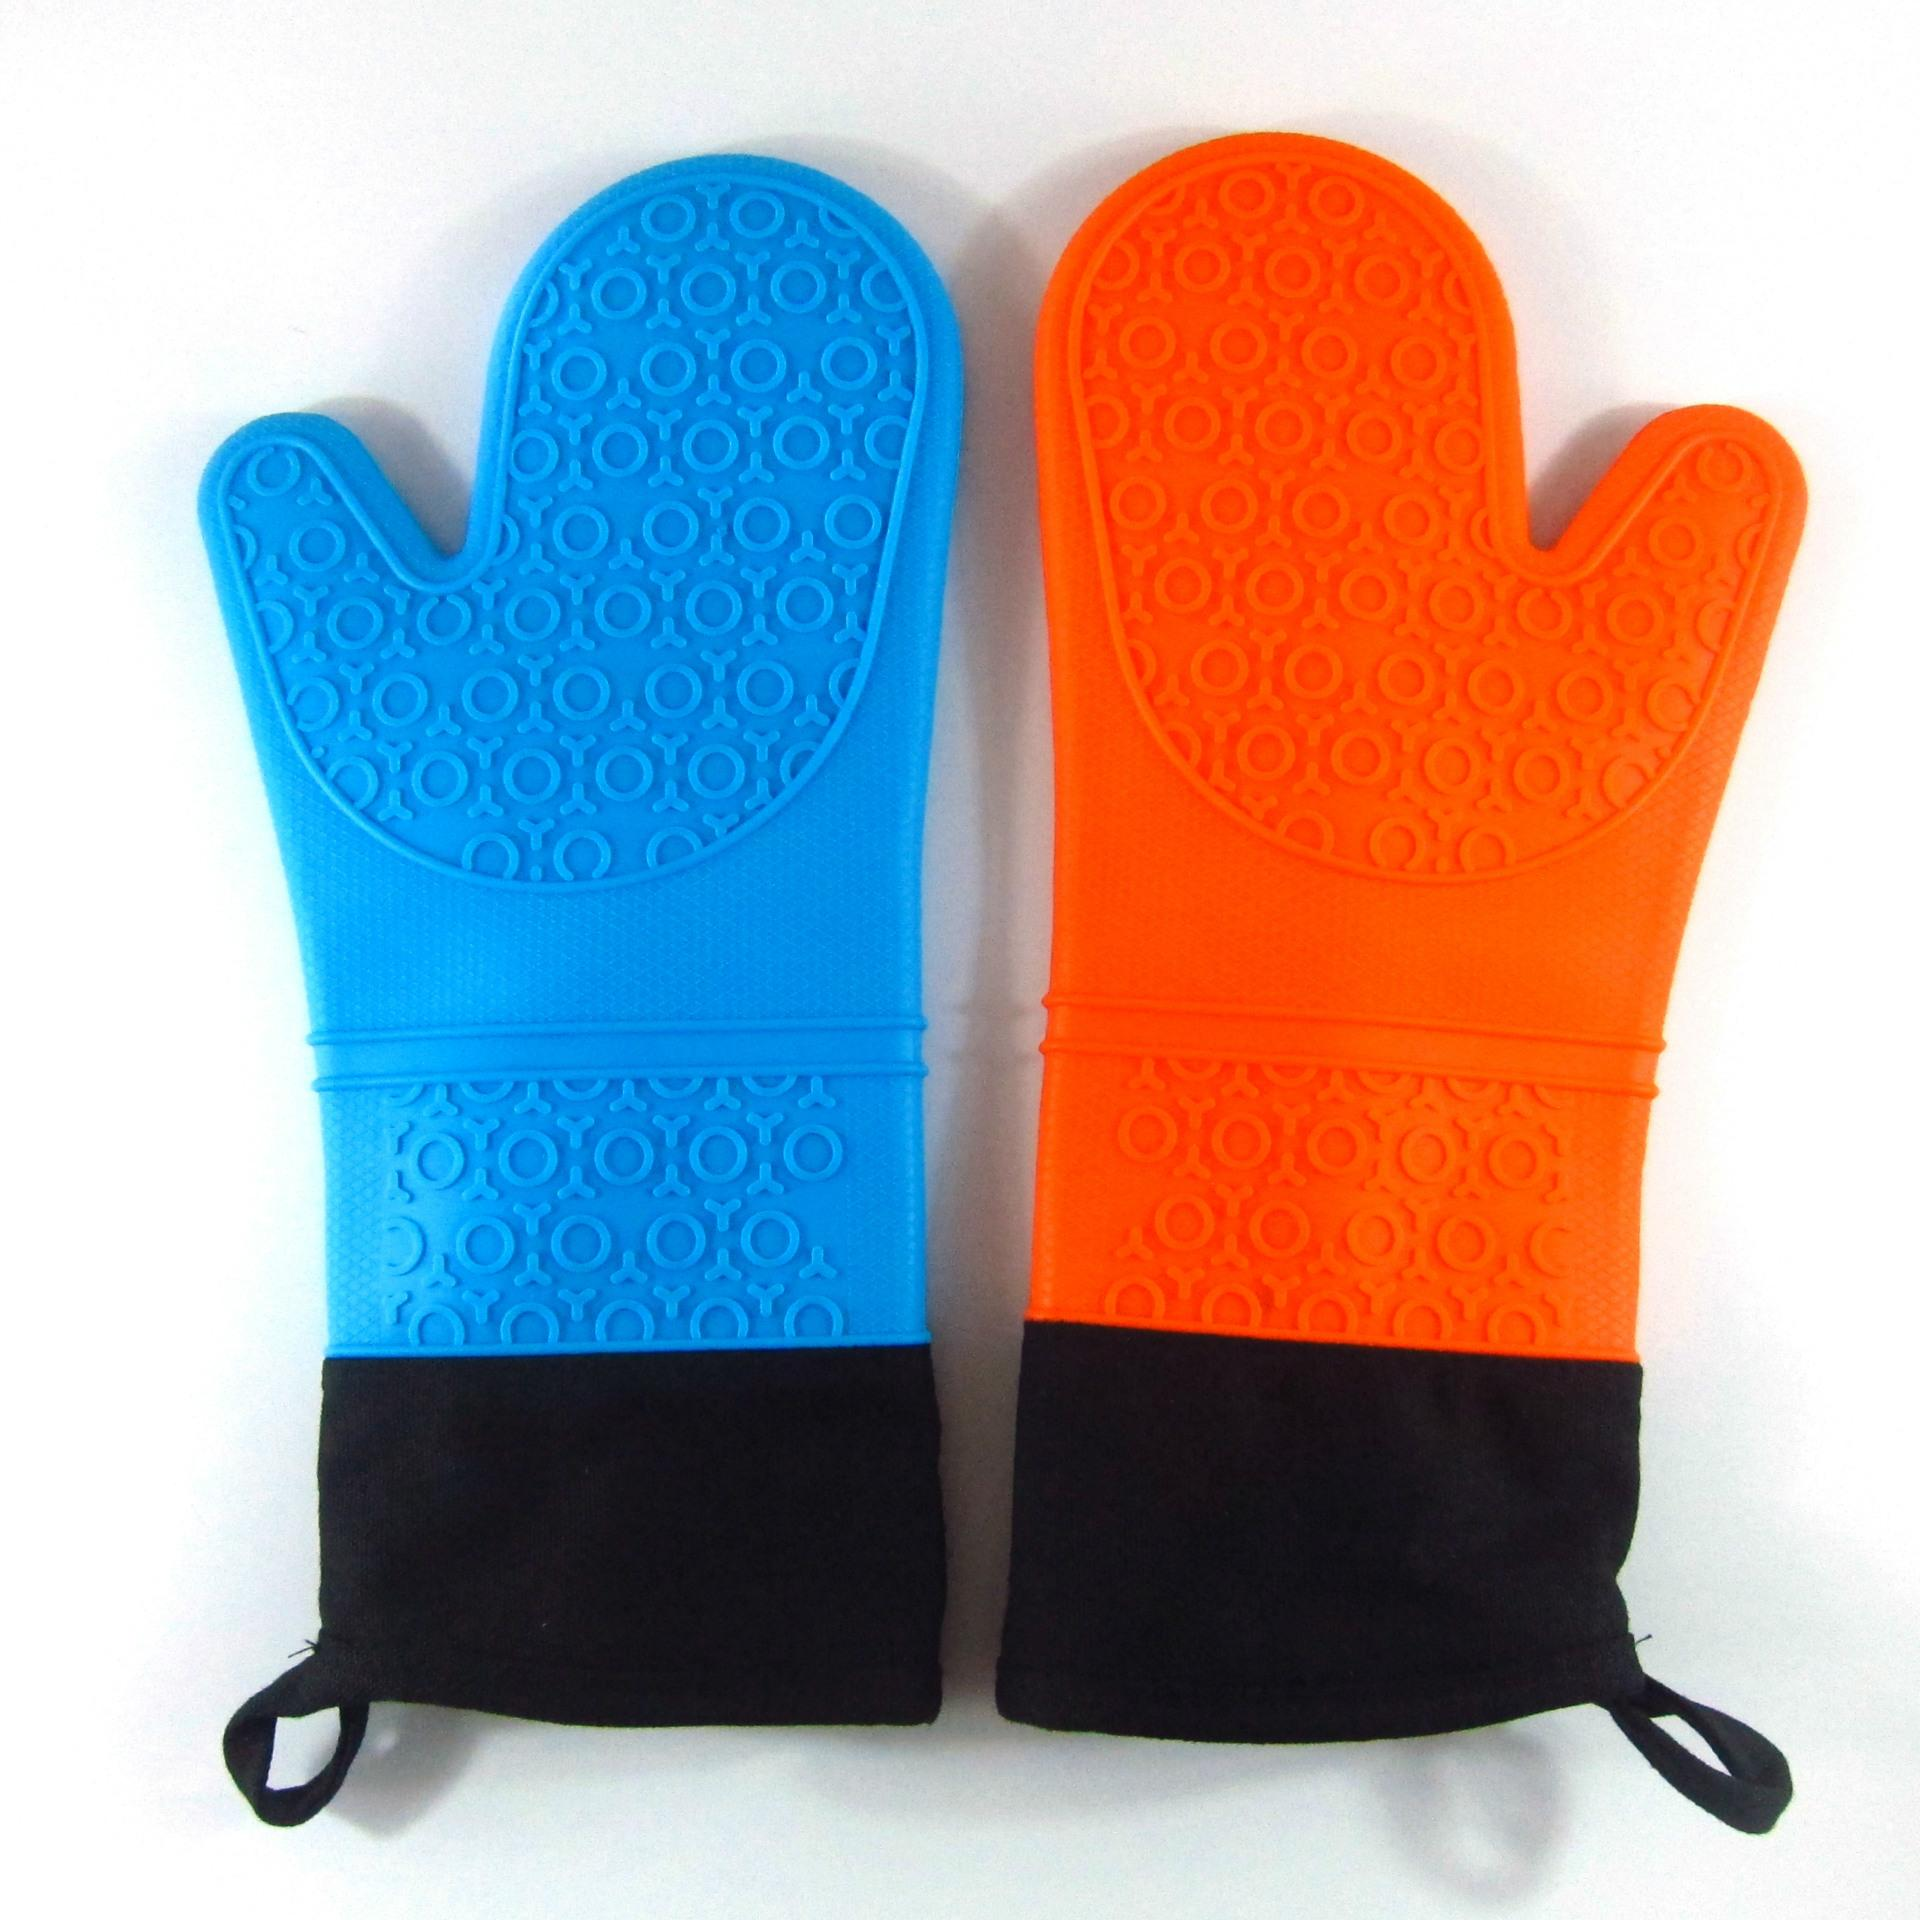 2017 Kitchen Silicon Mittens Oven Gloves Heat Resistant Home ...